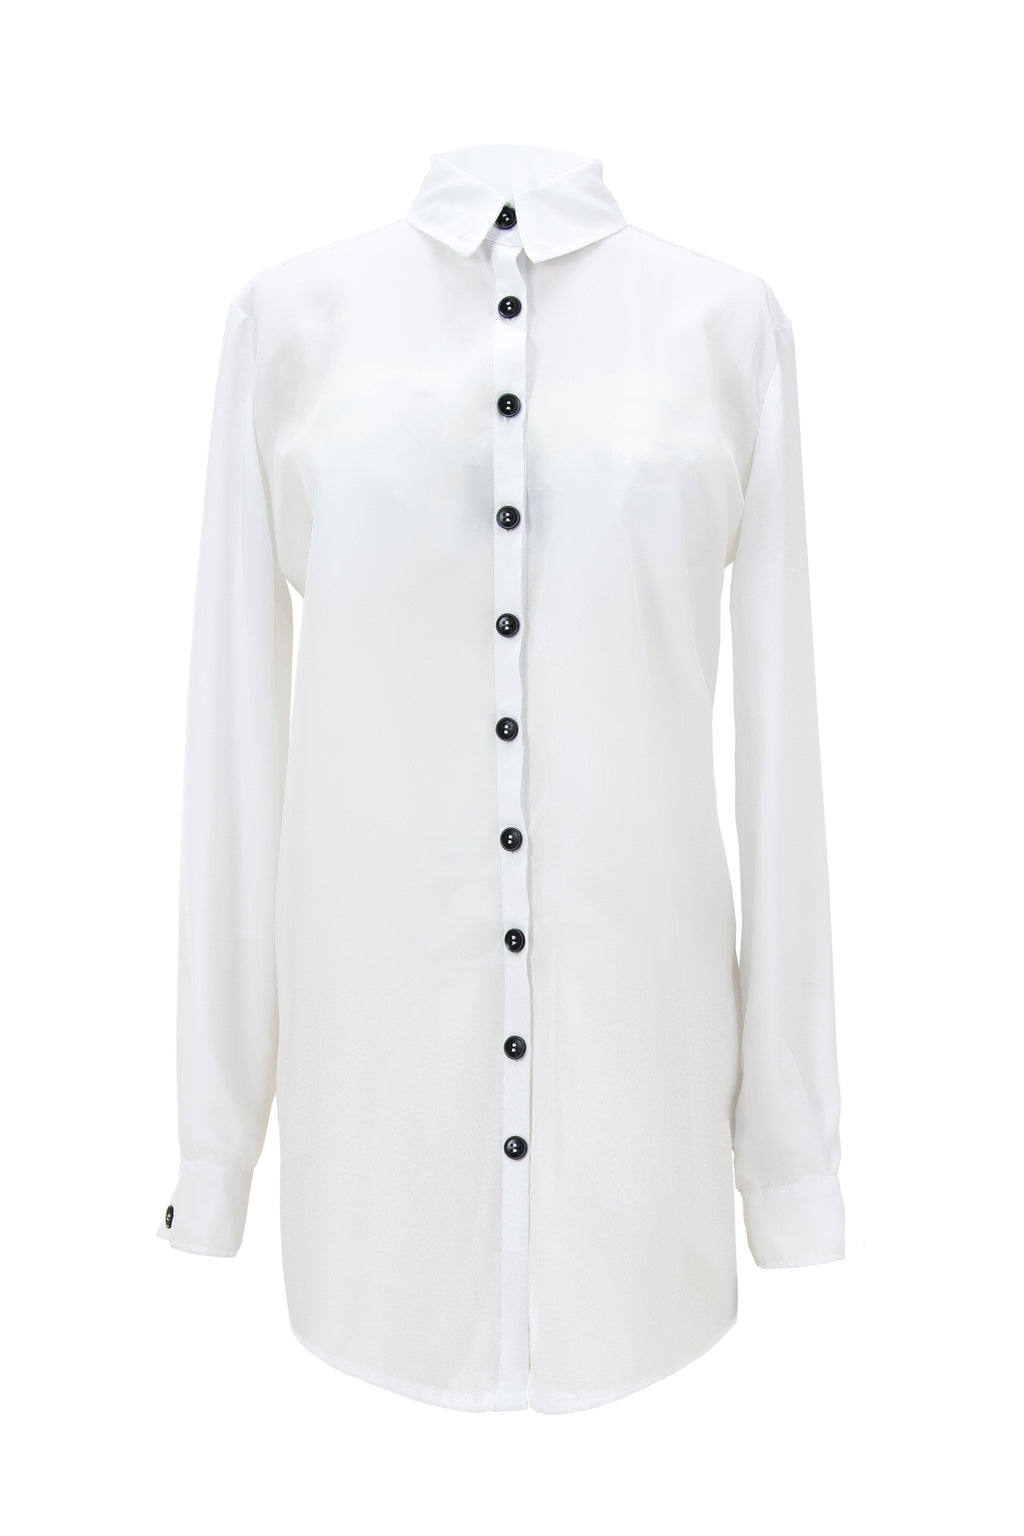 Paradigm Shift Classic Button-Down White Shirt - Tia Dorraine London